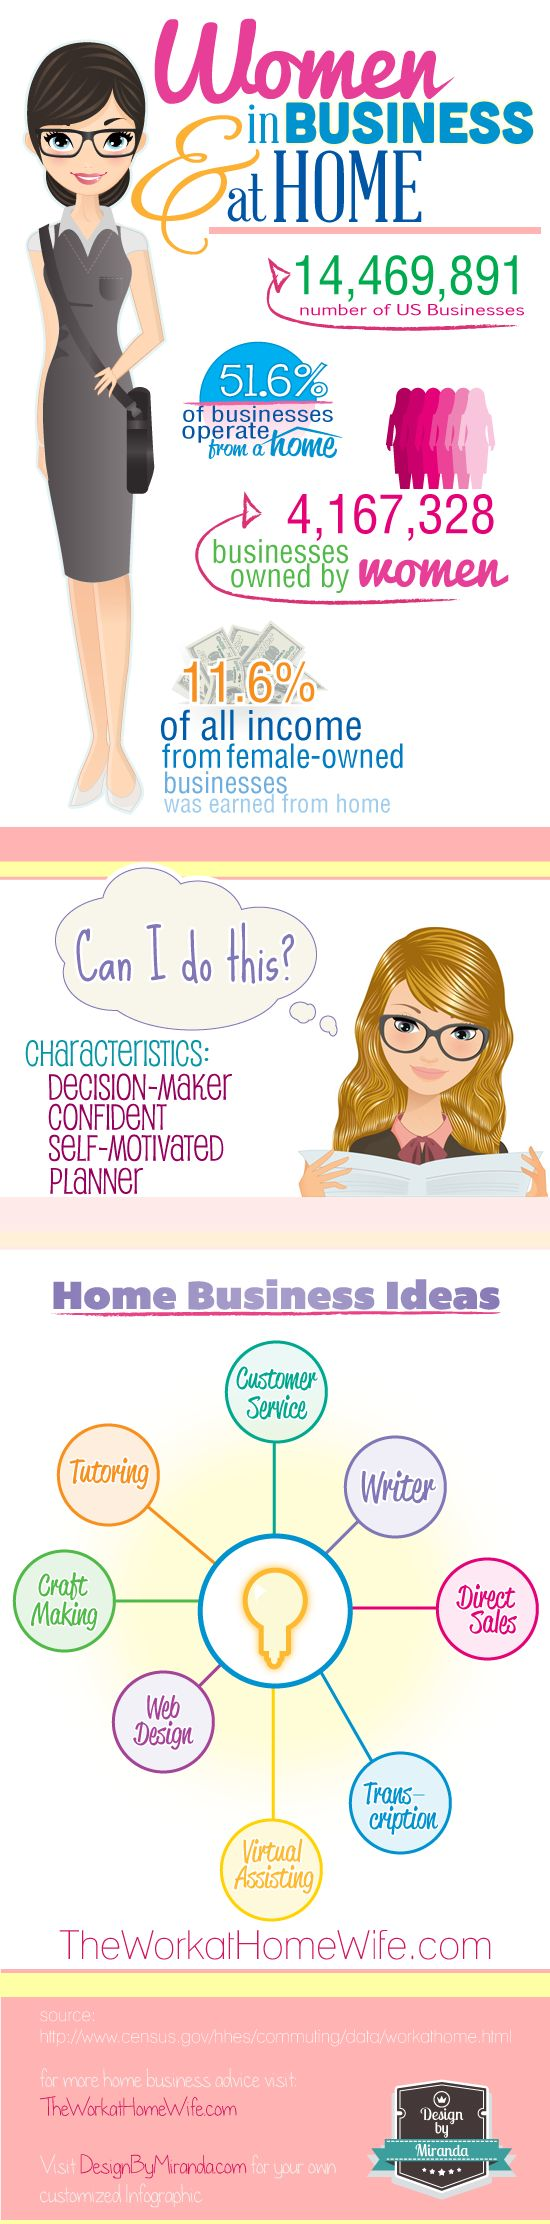 89 best Business images on Pinterest | Frugal, Save my money and ...